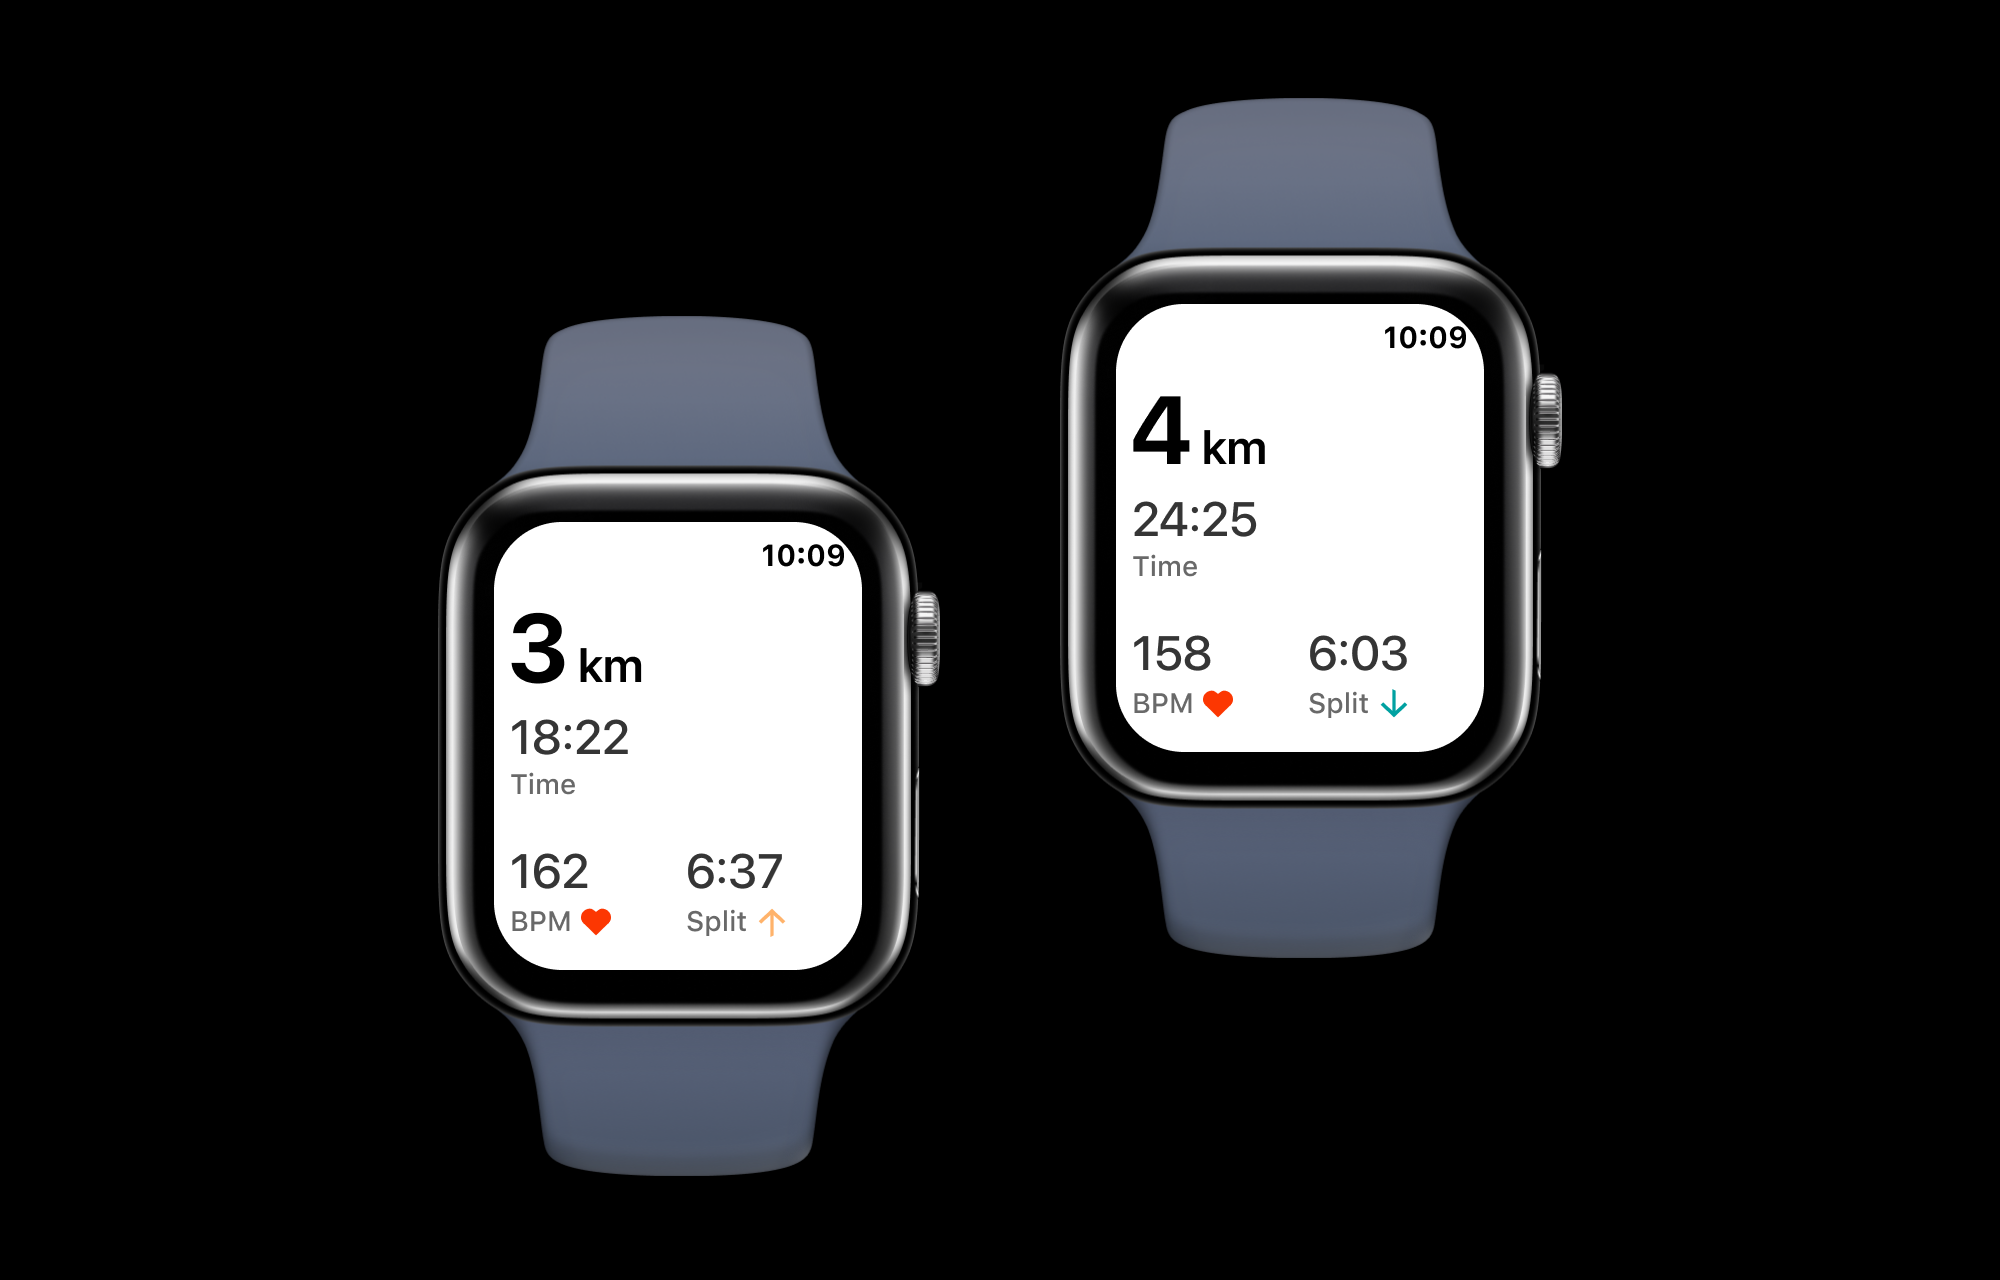 Two Apple Watches side by side displaying screens that show running interval screens